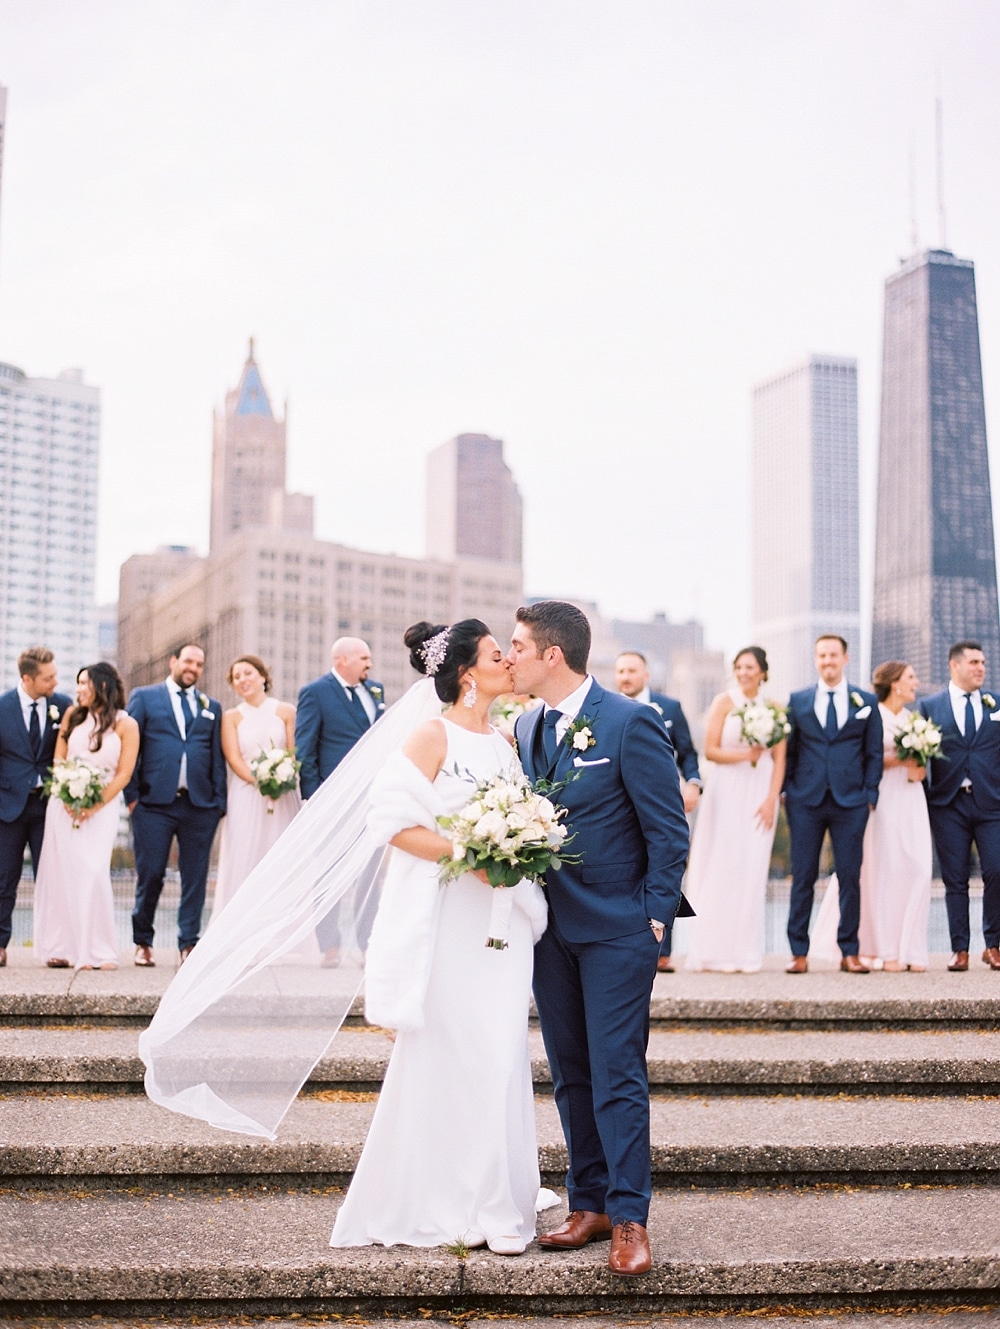 Kristin-La-Voie-Photography-chicago-wedding-photographer-8